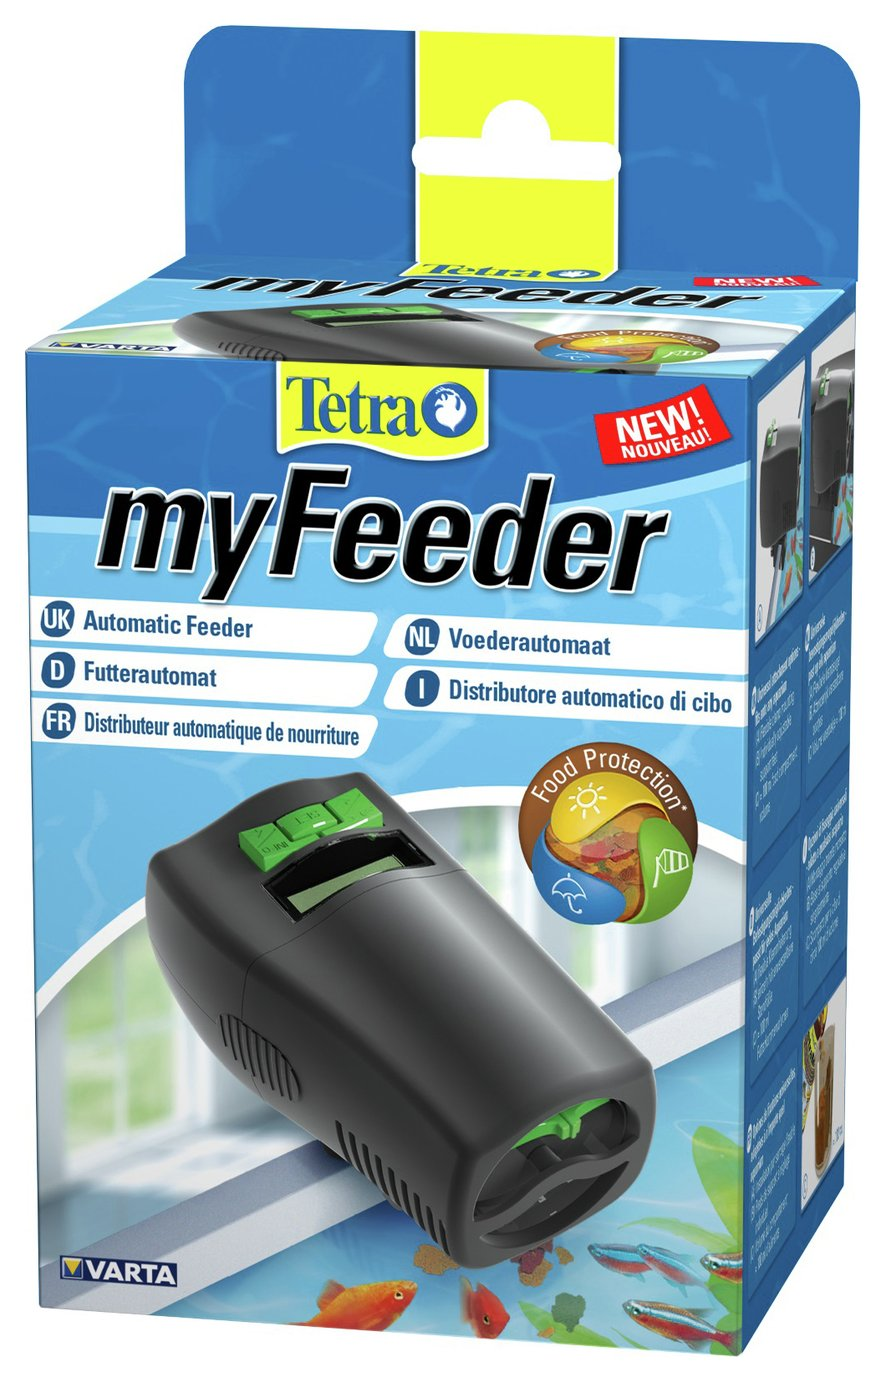 Tetra Automatic Feeder For Customised Fish Feeding review